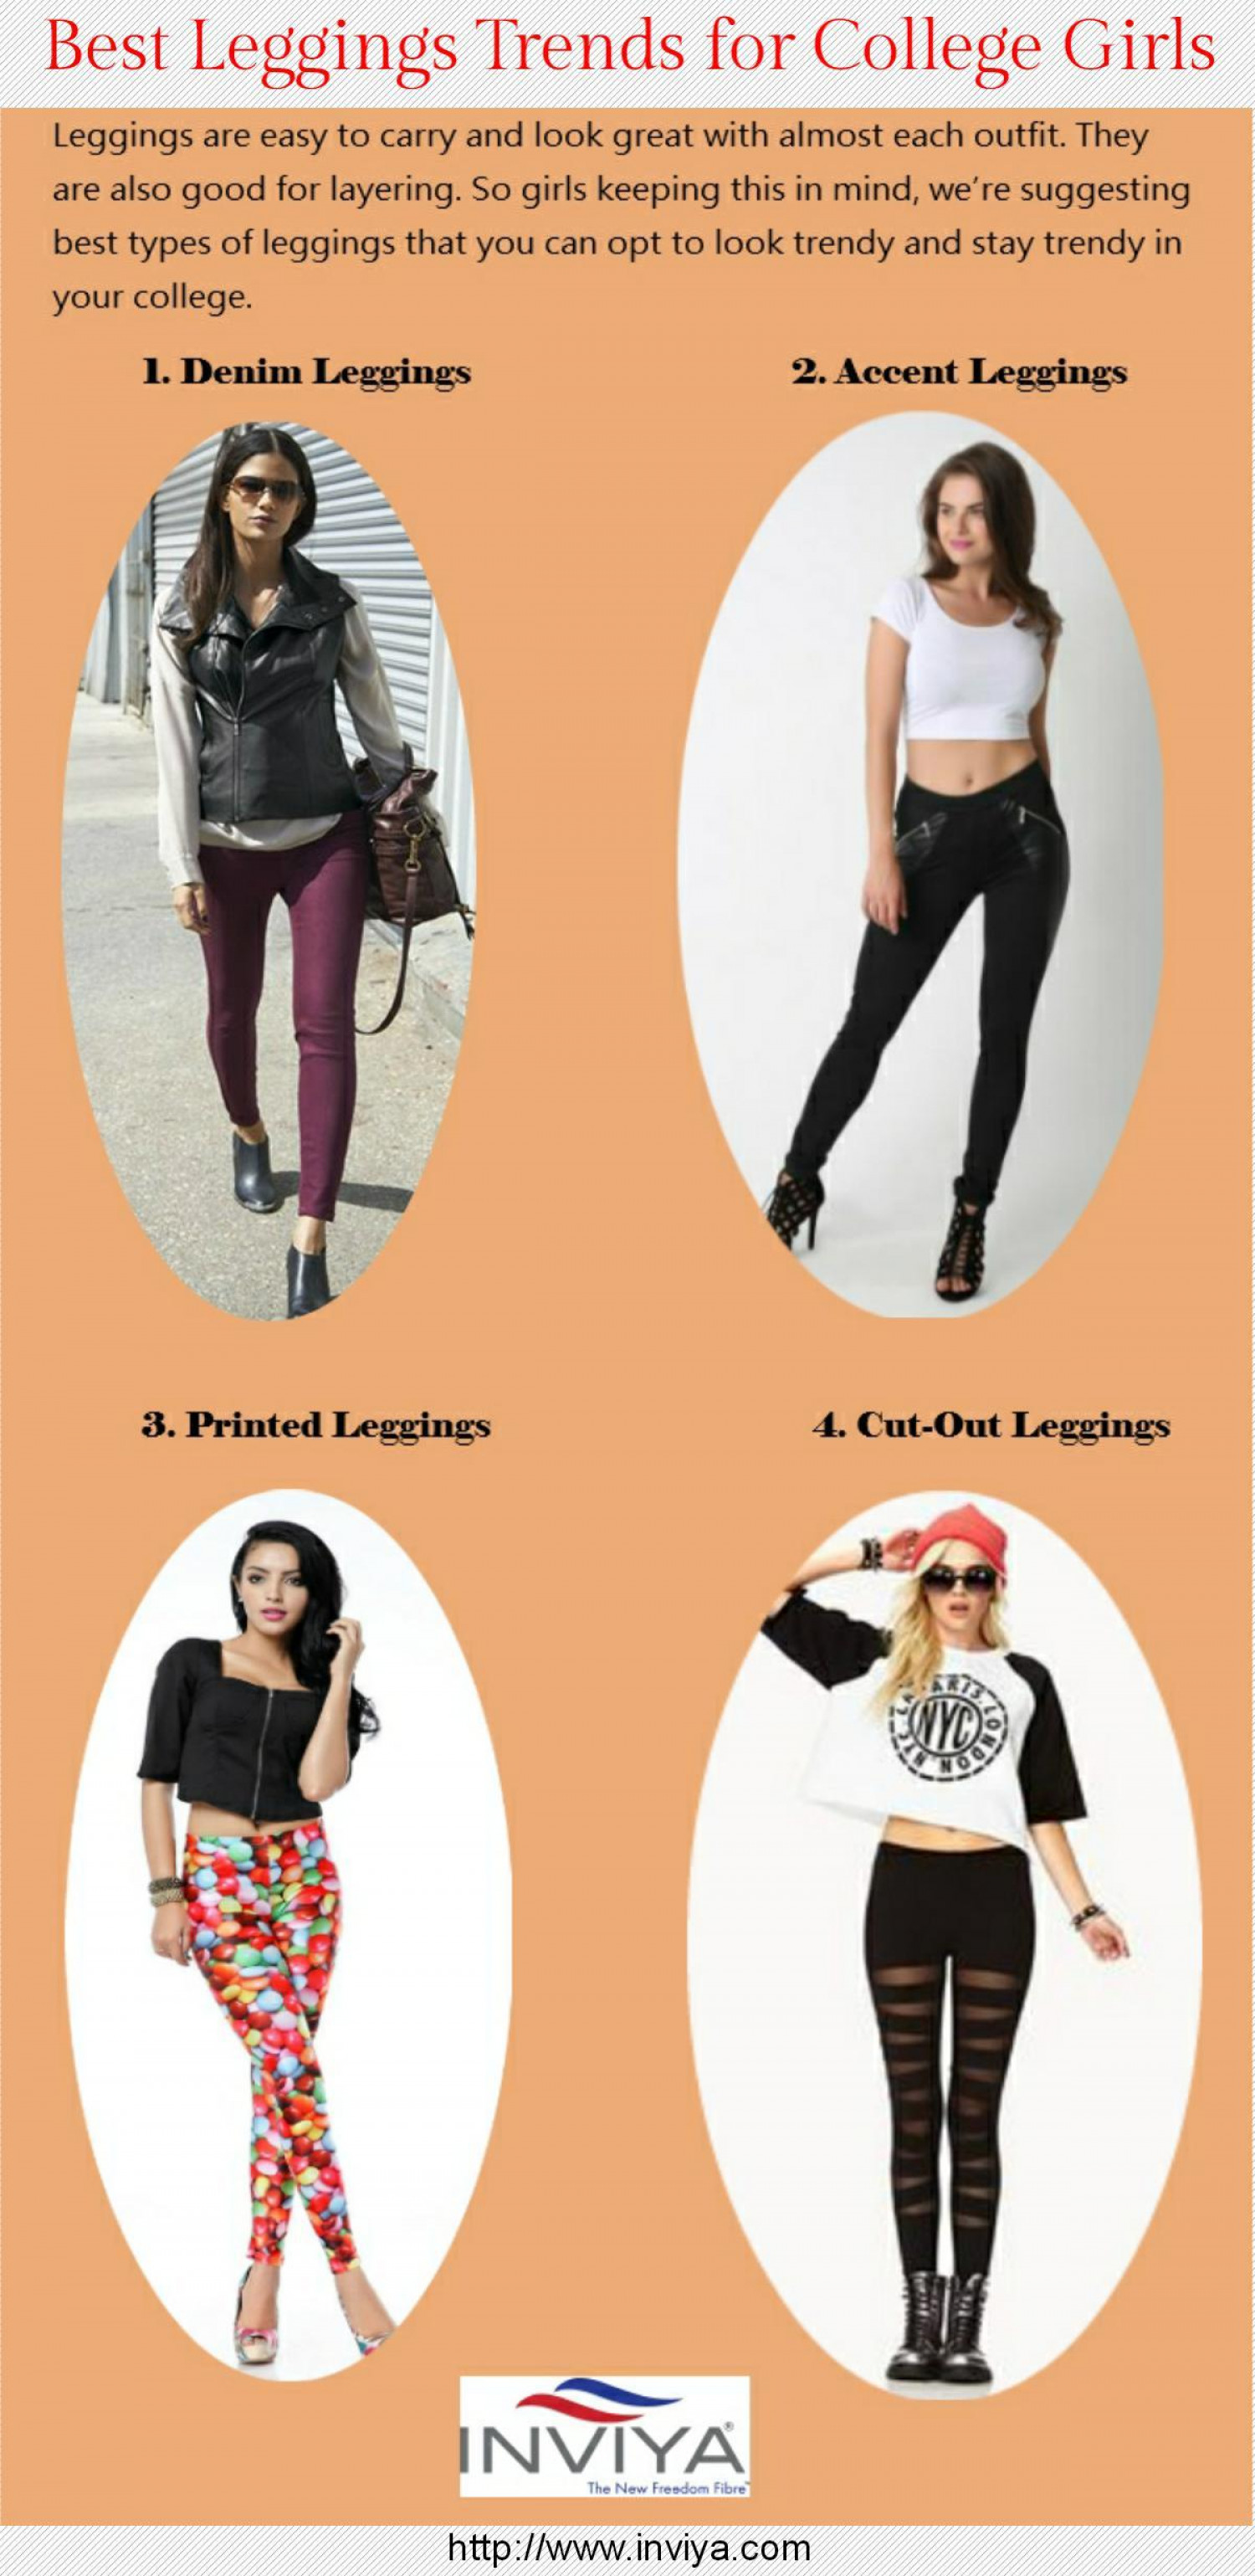 Best Leggings Trends for College Girls Infographic